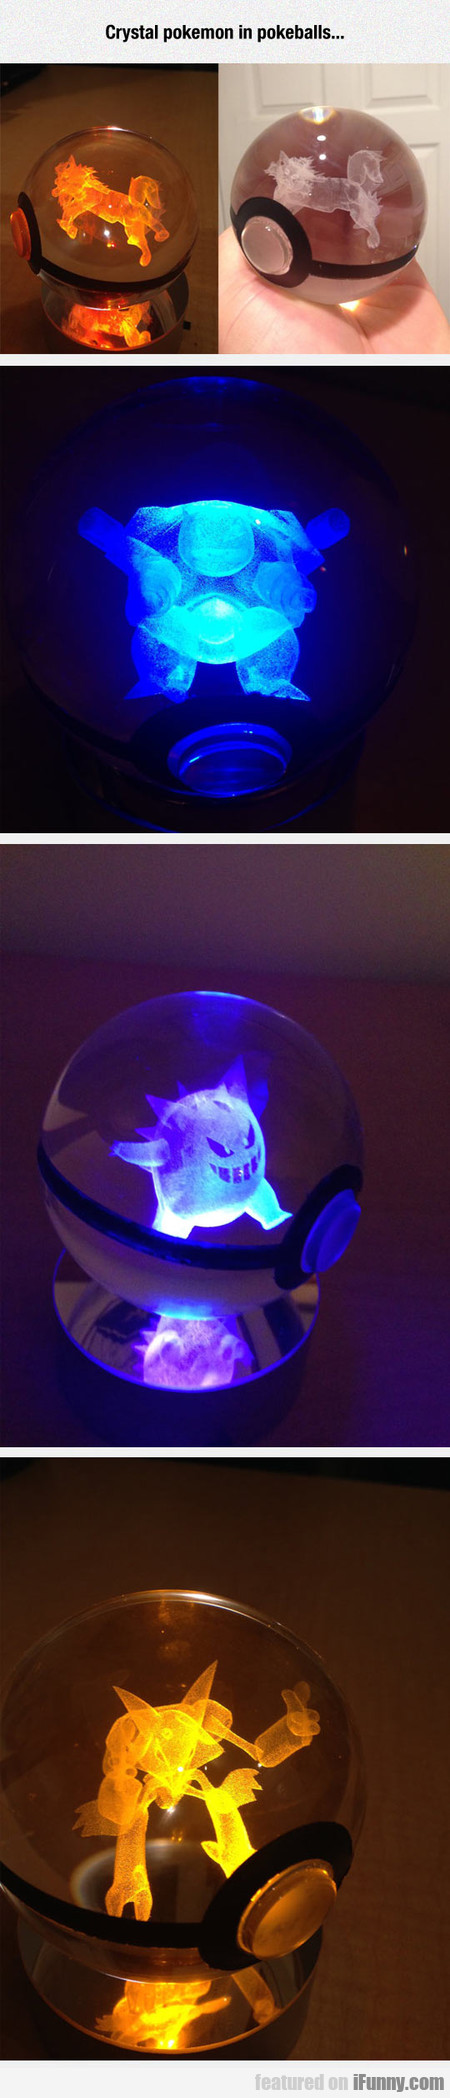 I Need To Catch 'Em All